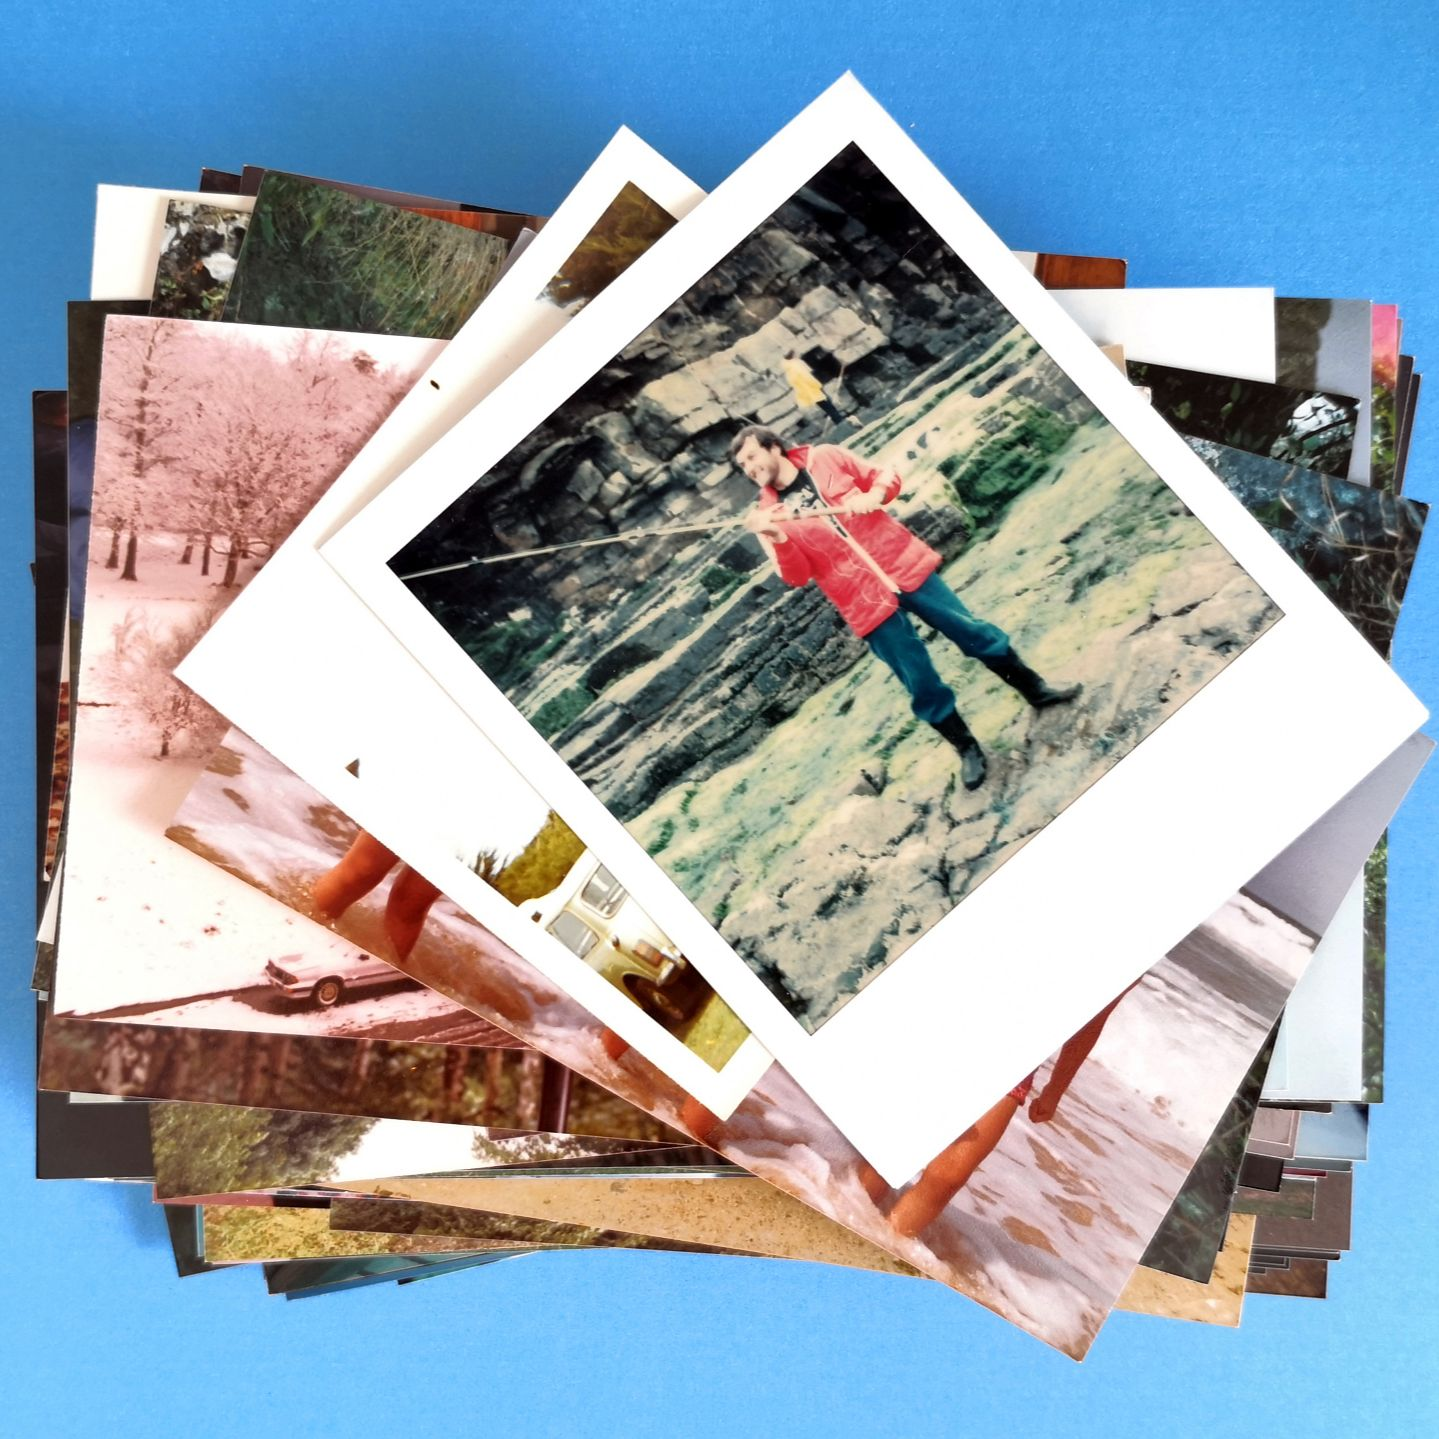 Pile of photos depicting the 100 photos photo scanning service.